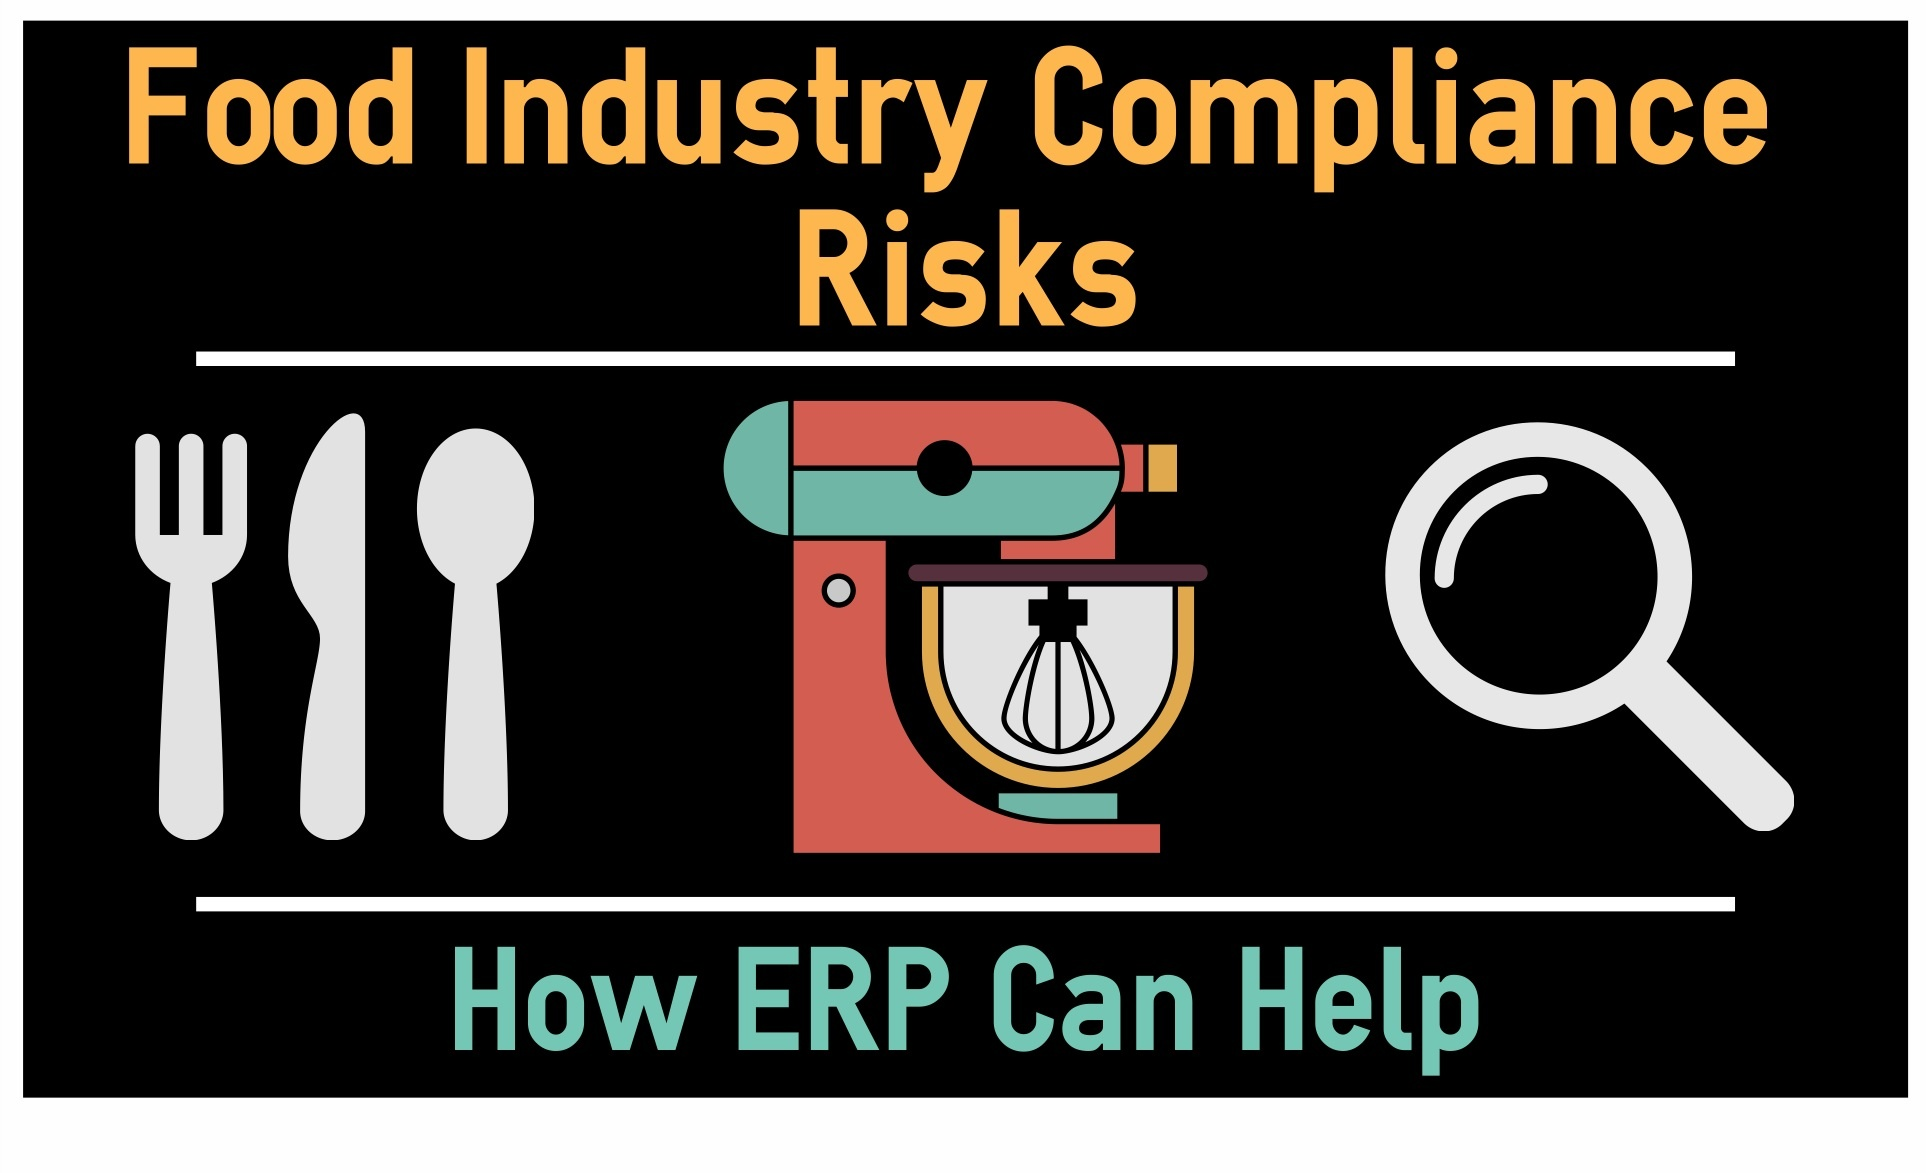 Food Industry Compliance Risks: How ERP Can Help